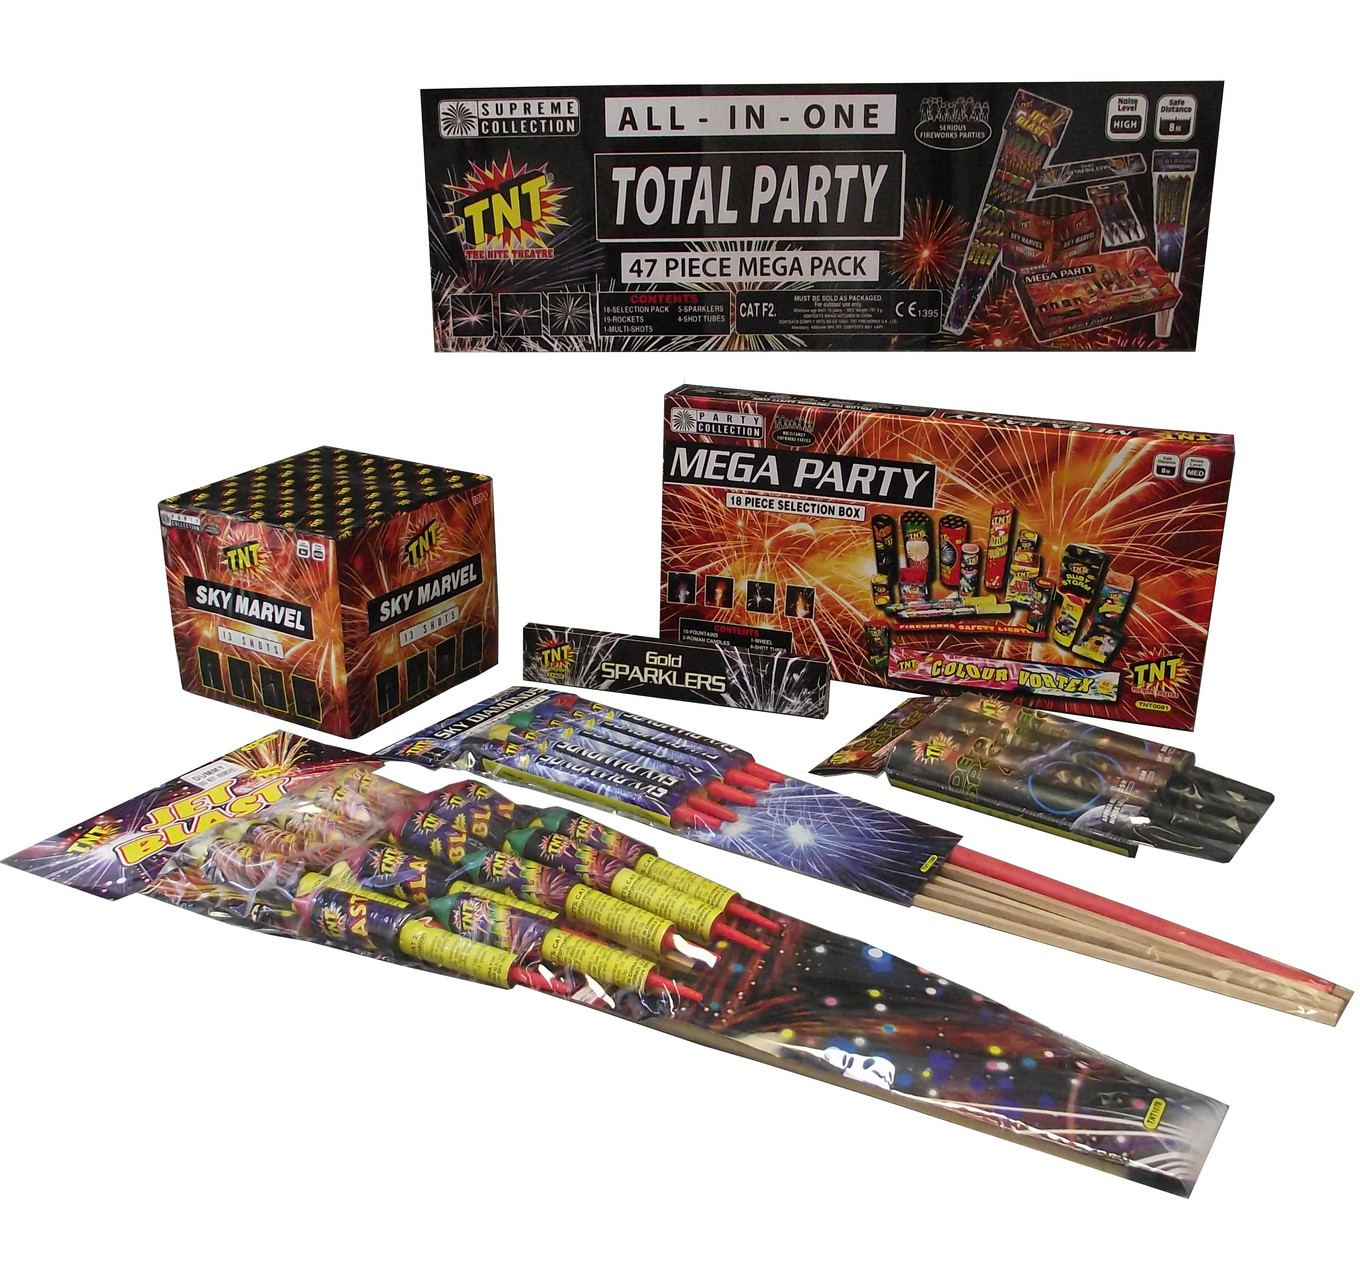 TNT FIREWORKS - Total Party - Party Box